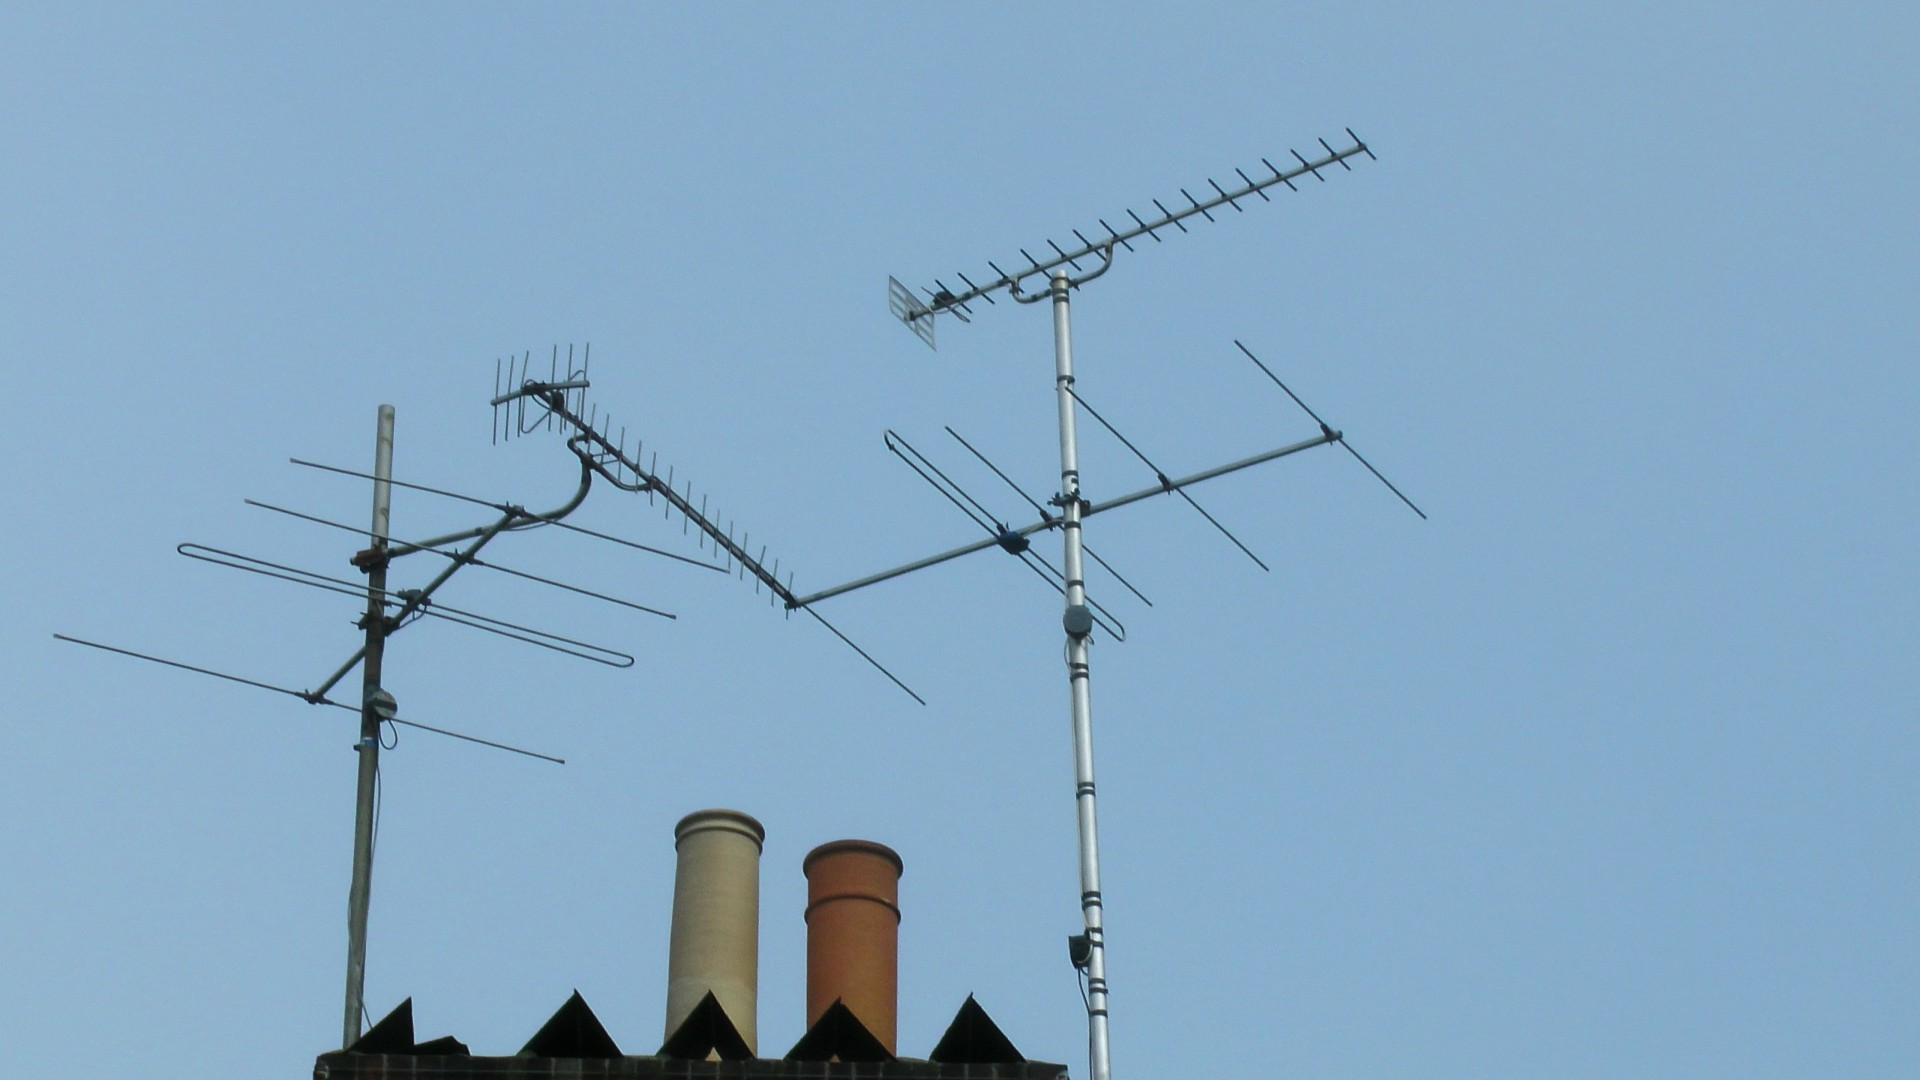 TV Antenna Aerials On Roof Free Stock Photo - Public Domain Pictures